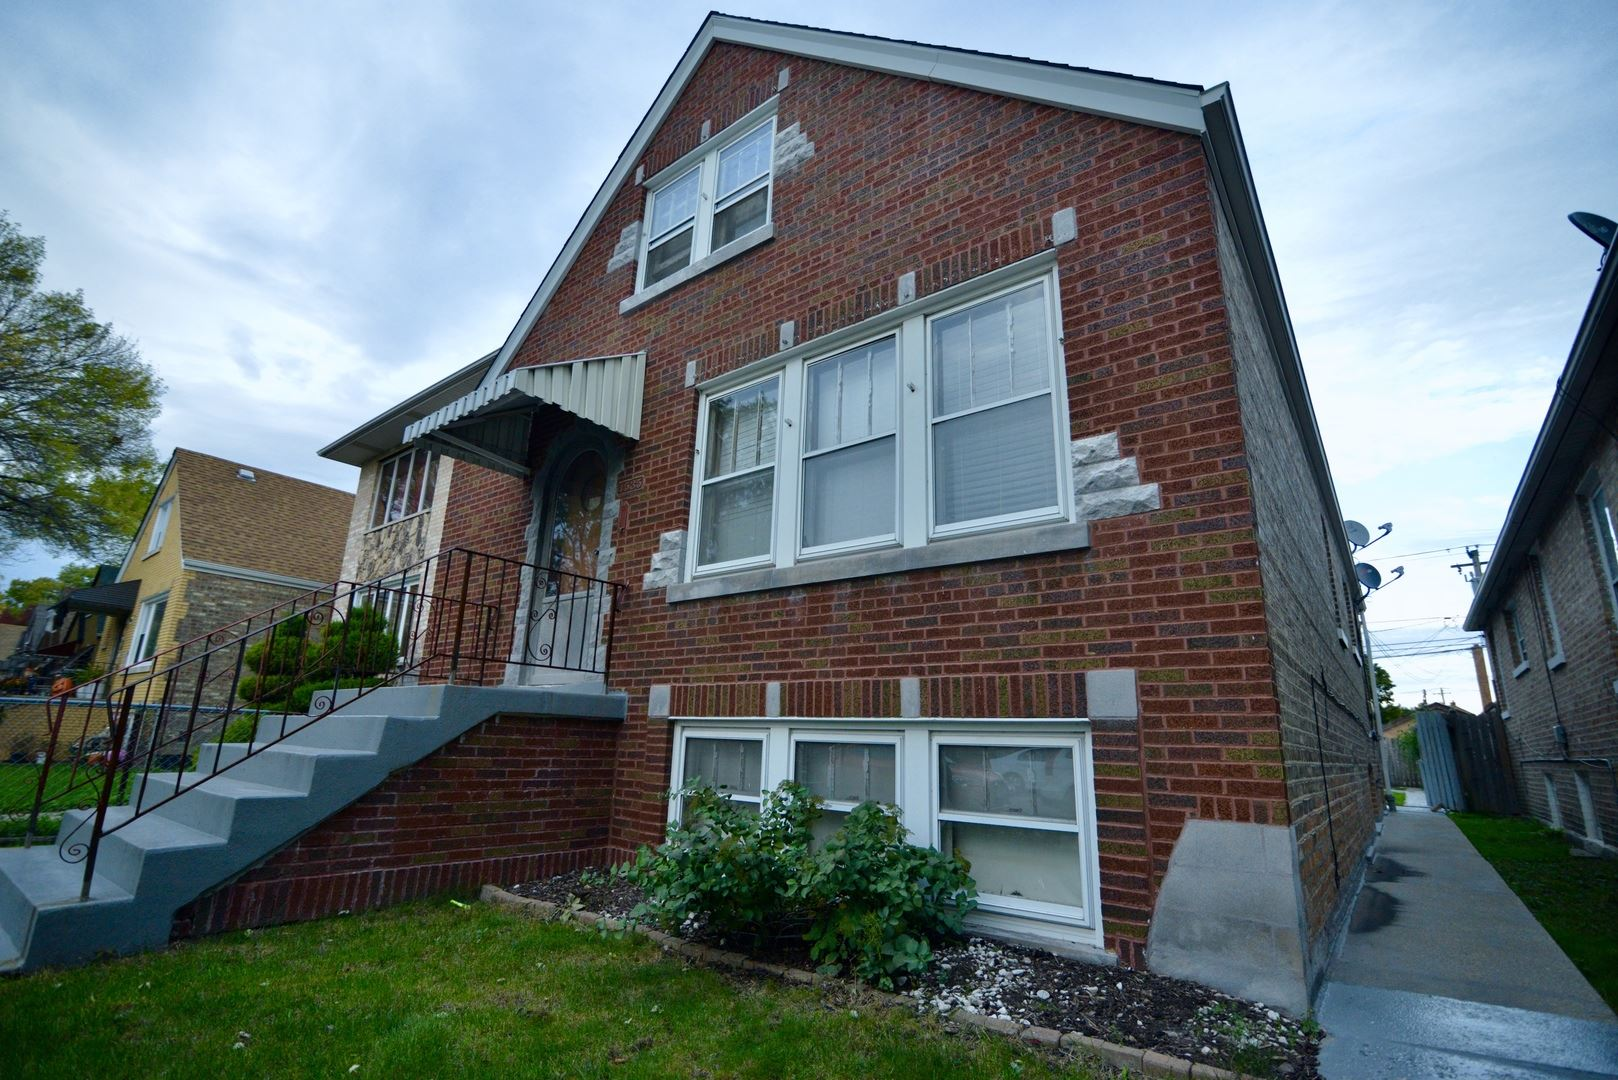 4535 S KARLOV Avenue, Chicago, IL 60632 - #: 10557472